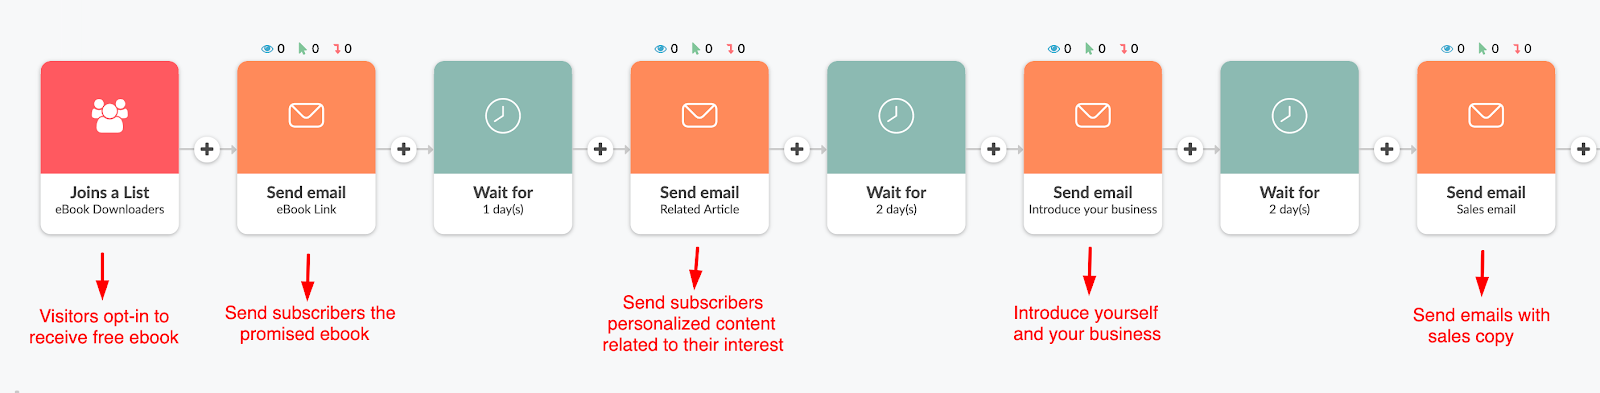 Lead Magnet automated email sequence example